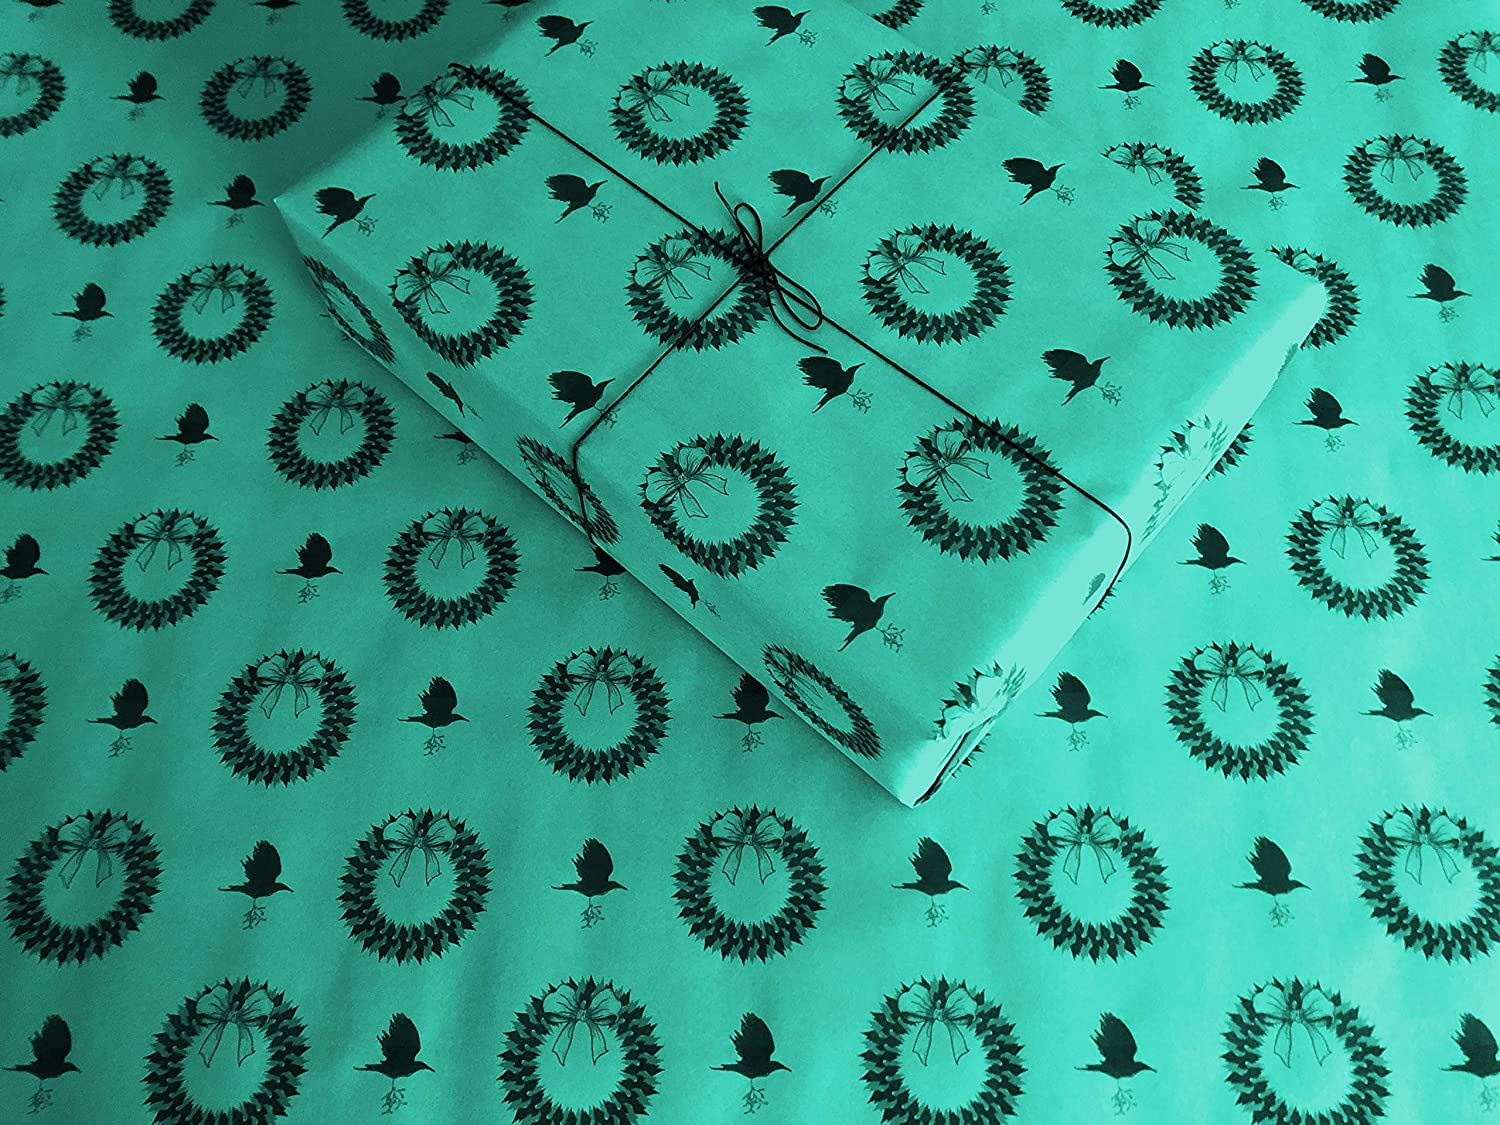 up to 8 Feet of Birthday Gift Wrap FREE Shipping Ravens /& Wreaths on Aqua//Teal Gothic Wrapping Paper